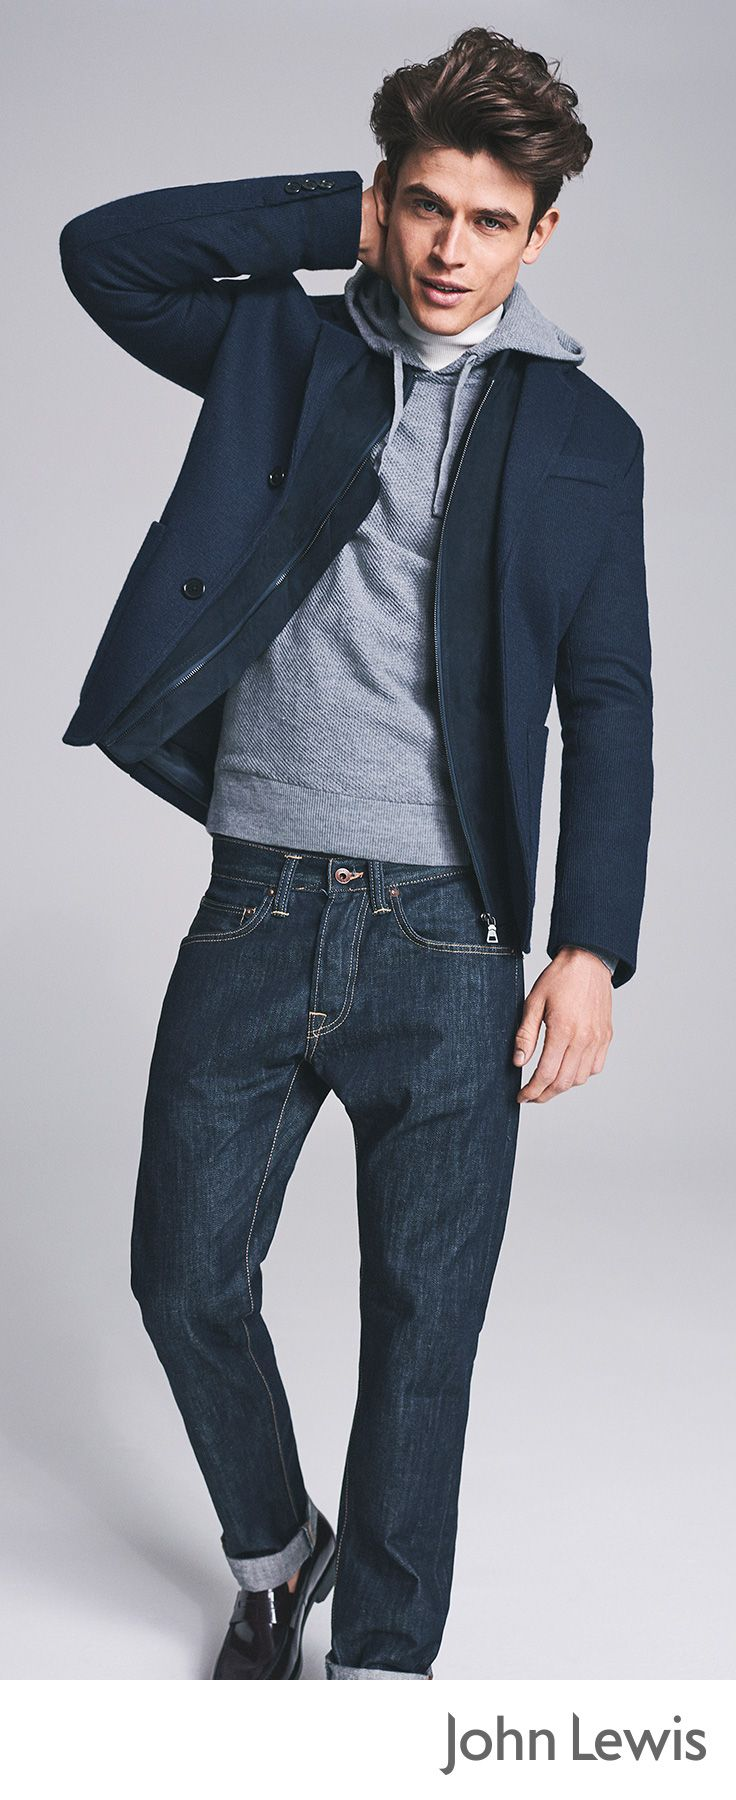 Layer up by throwing a grey hoodie over casual ensembles for a relaxed weekend look. Pair with a classic pair of blue jeans and navy jacket for a classic informal outfit.